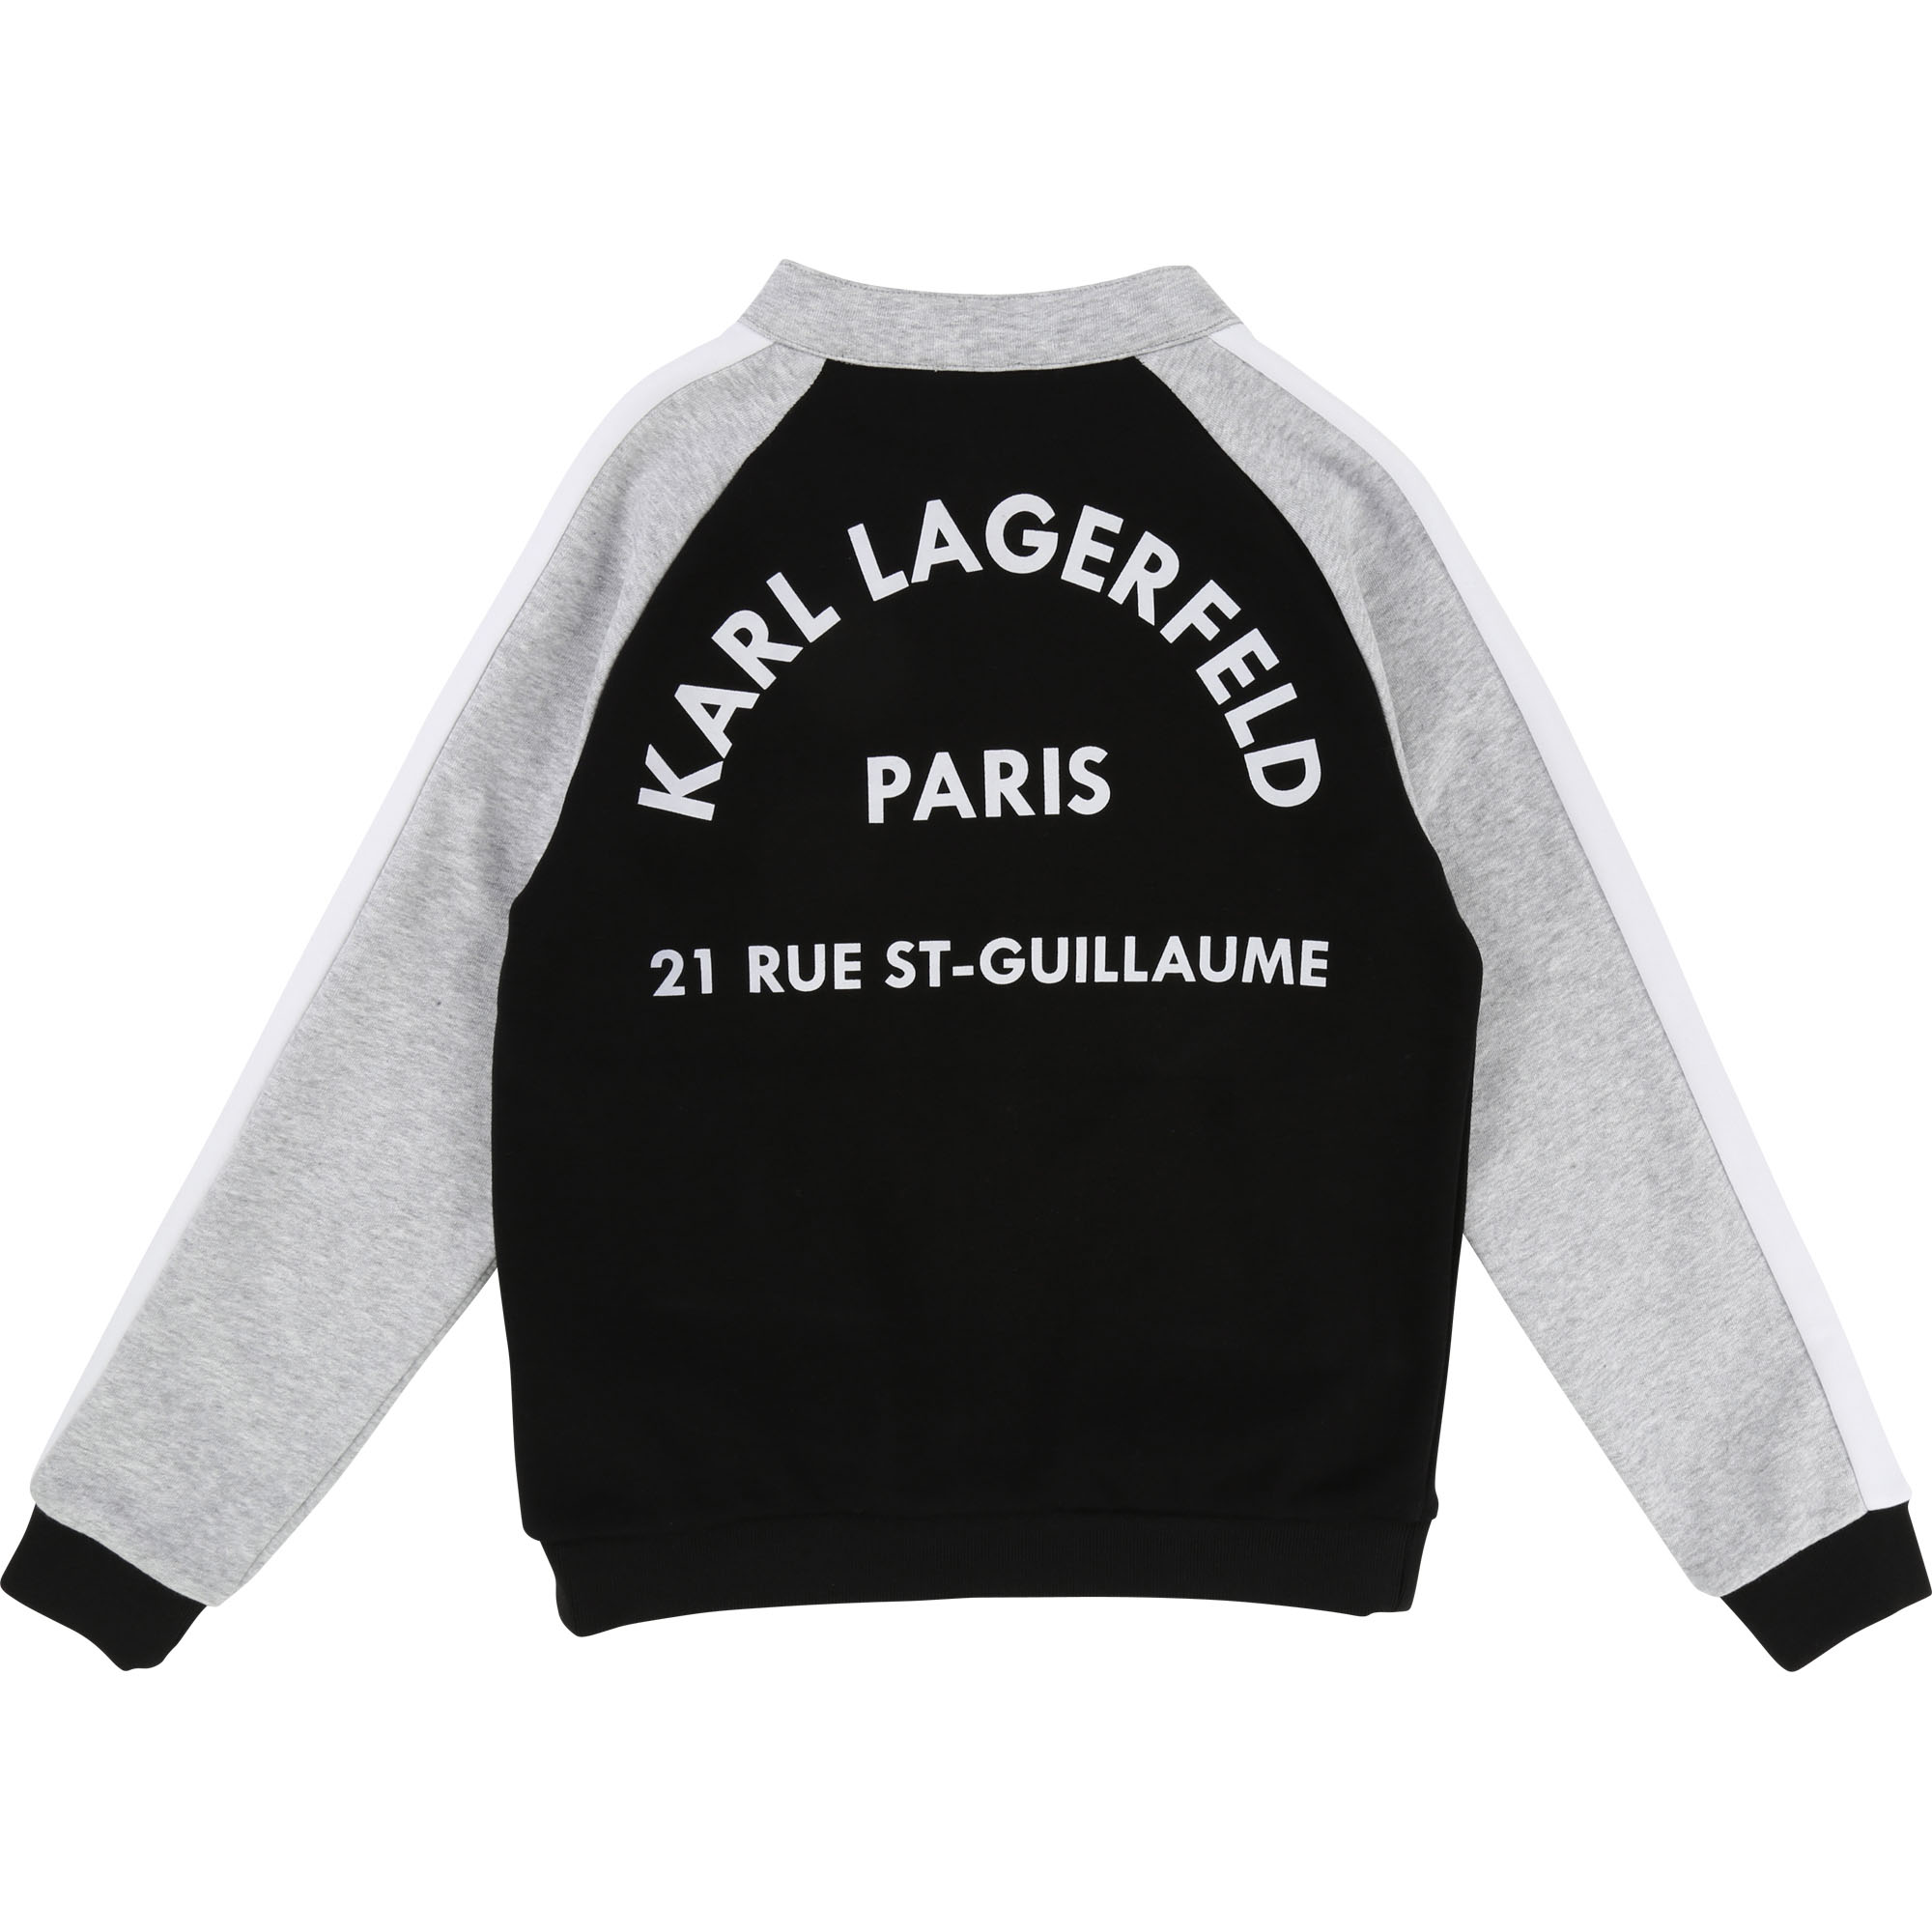 karl lagerfeld kids capsule collection